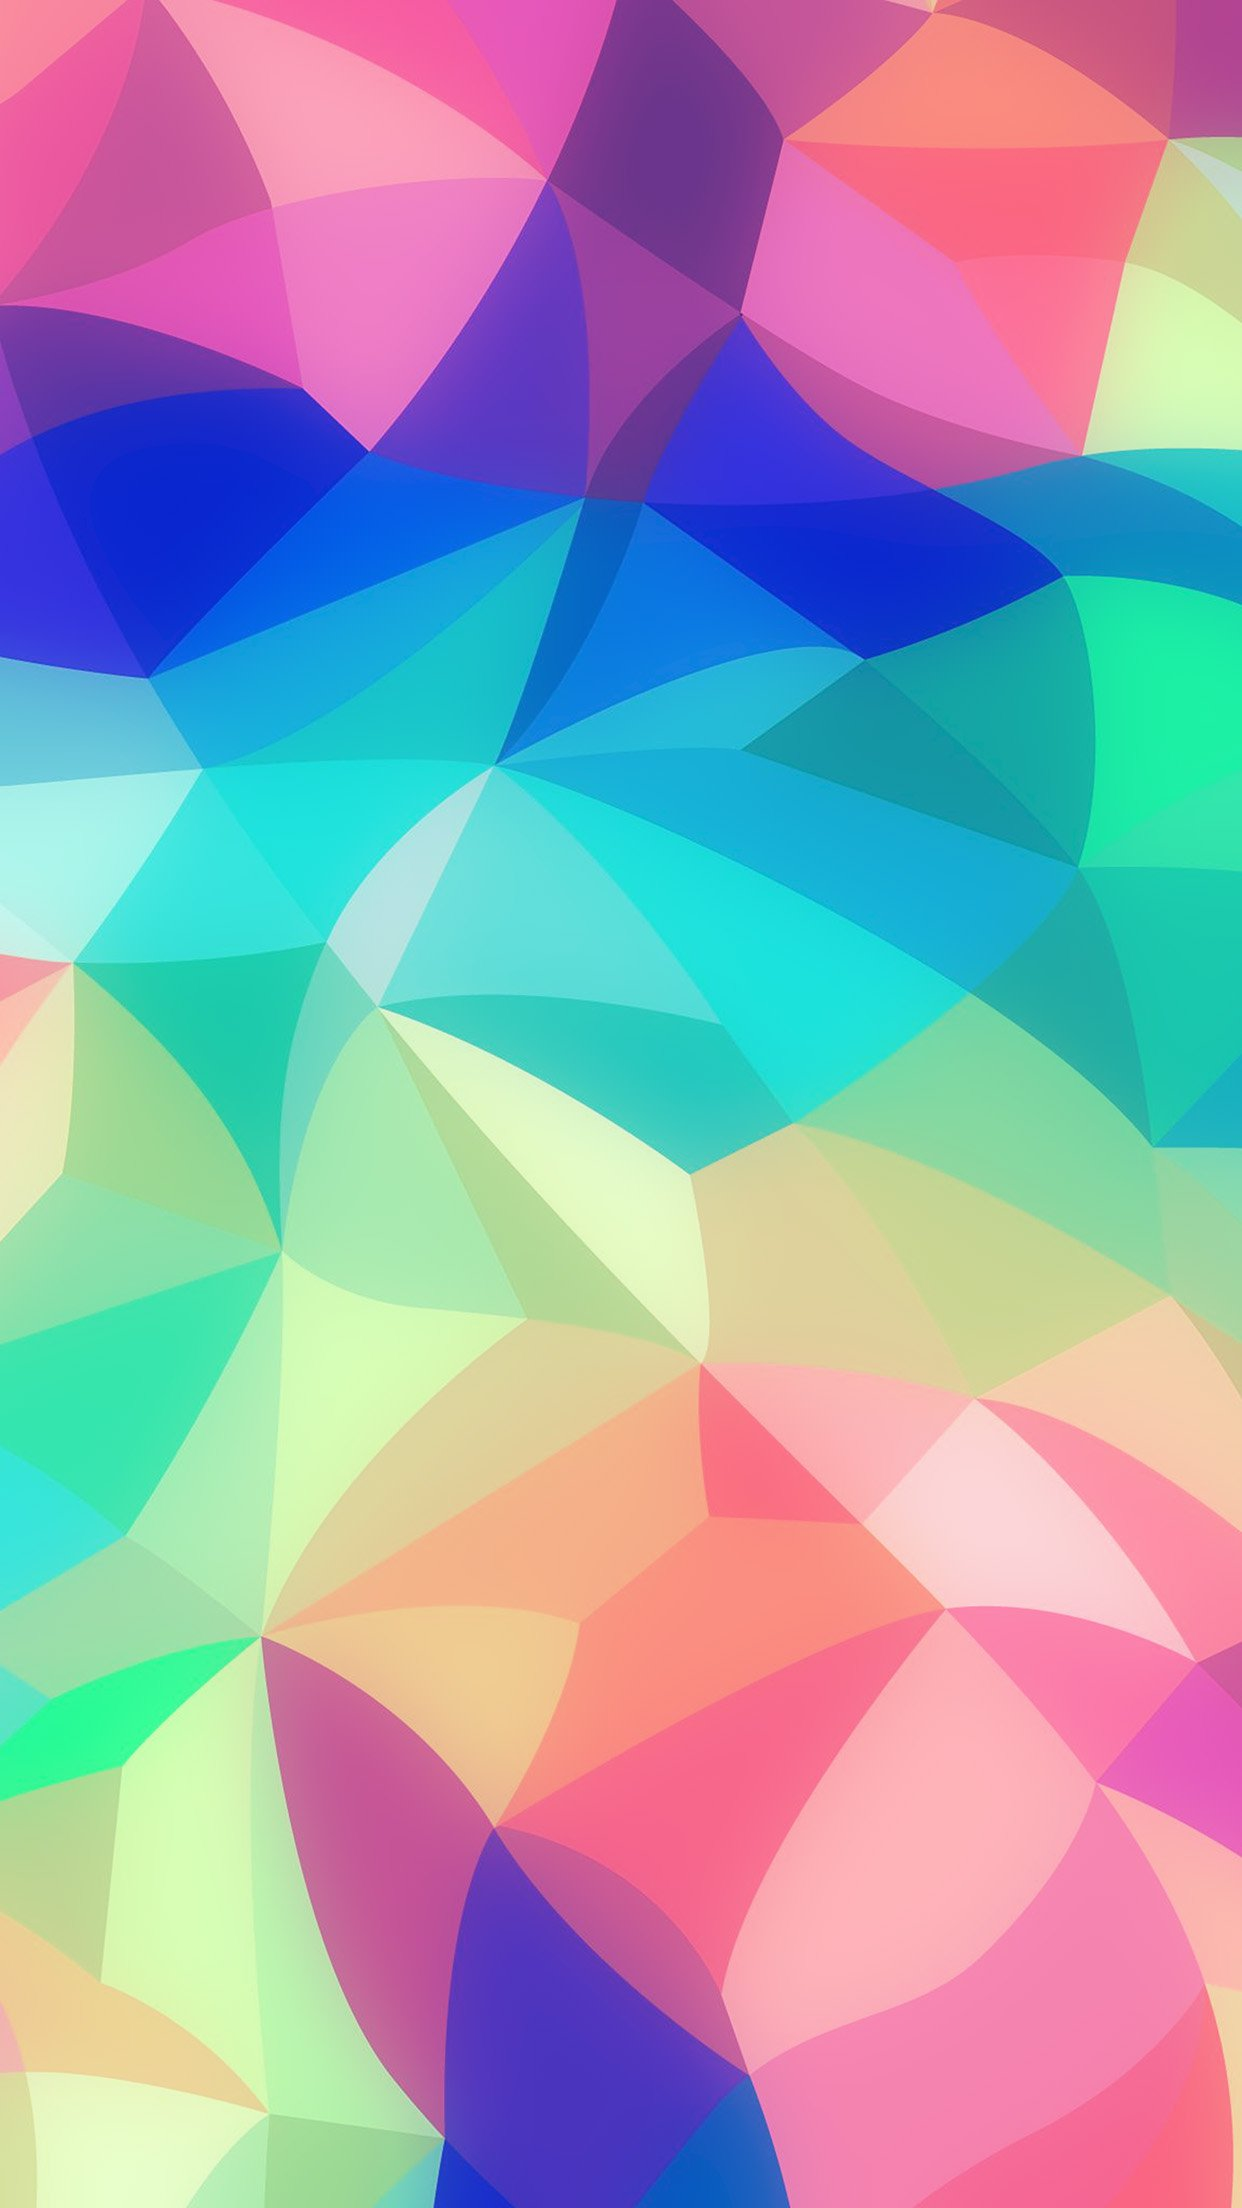 Rainbow Abstract Colors Pastel Soft Pattern Android - Pastel Abstract Colorful Background - HD Wallpaper